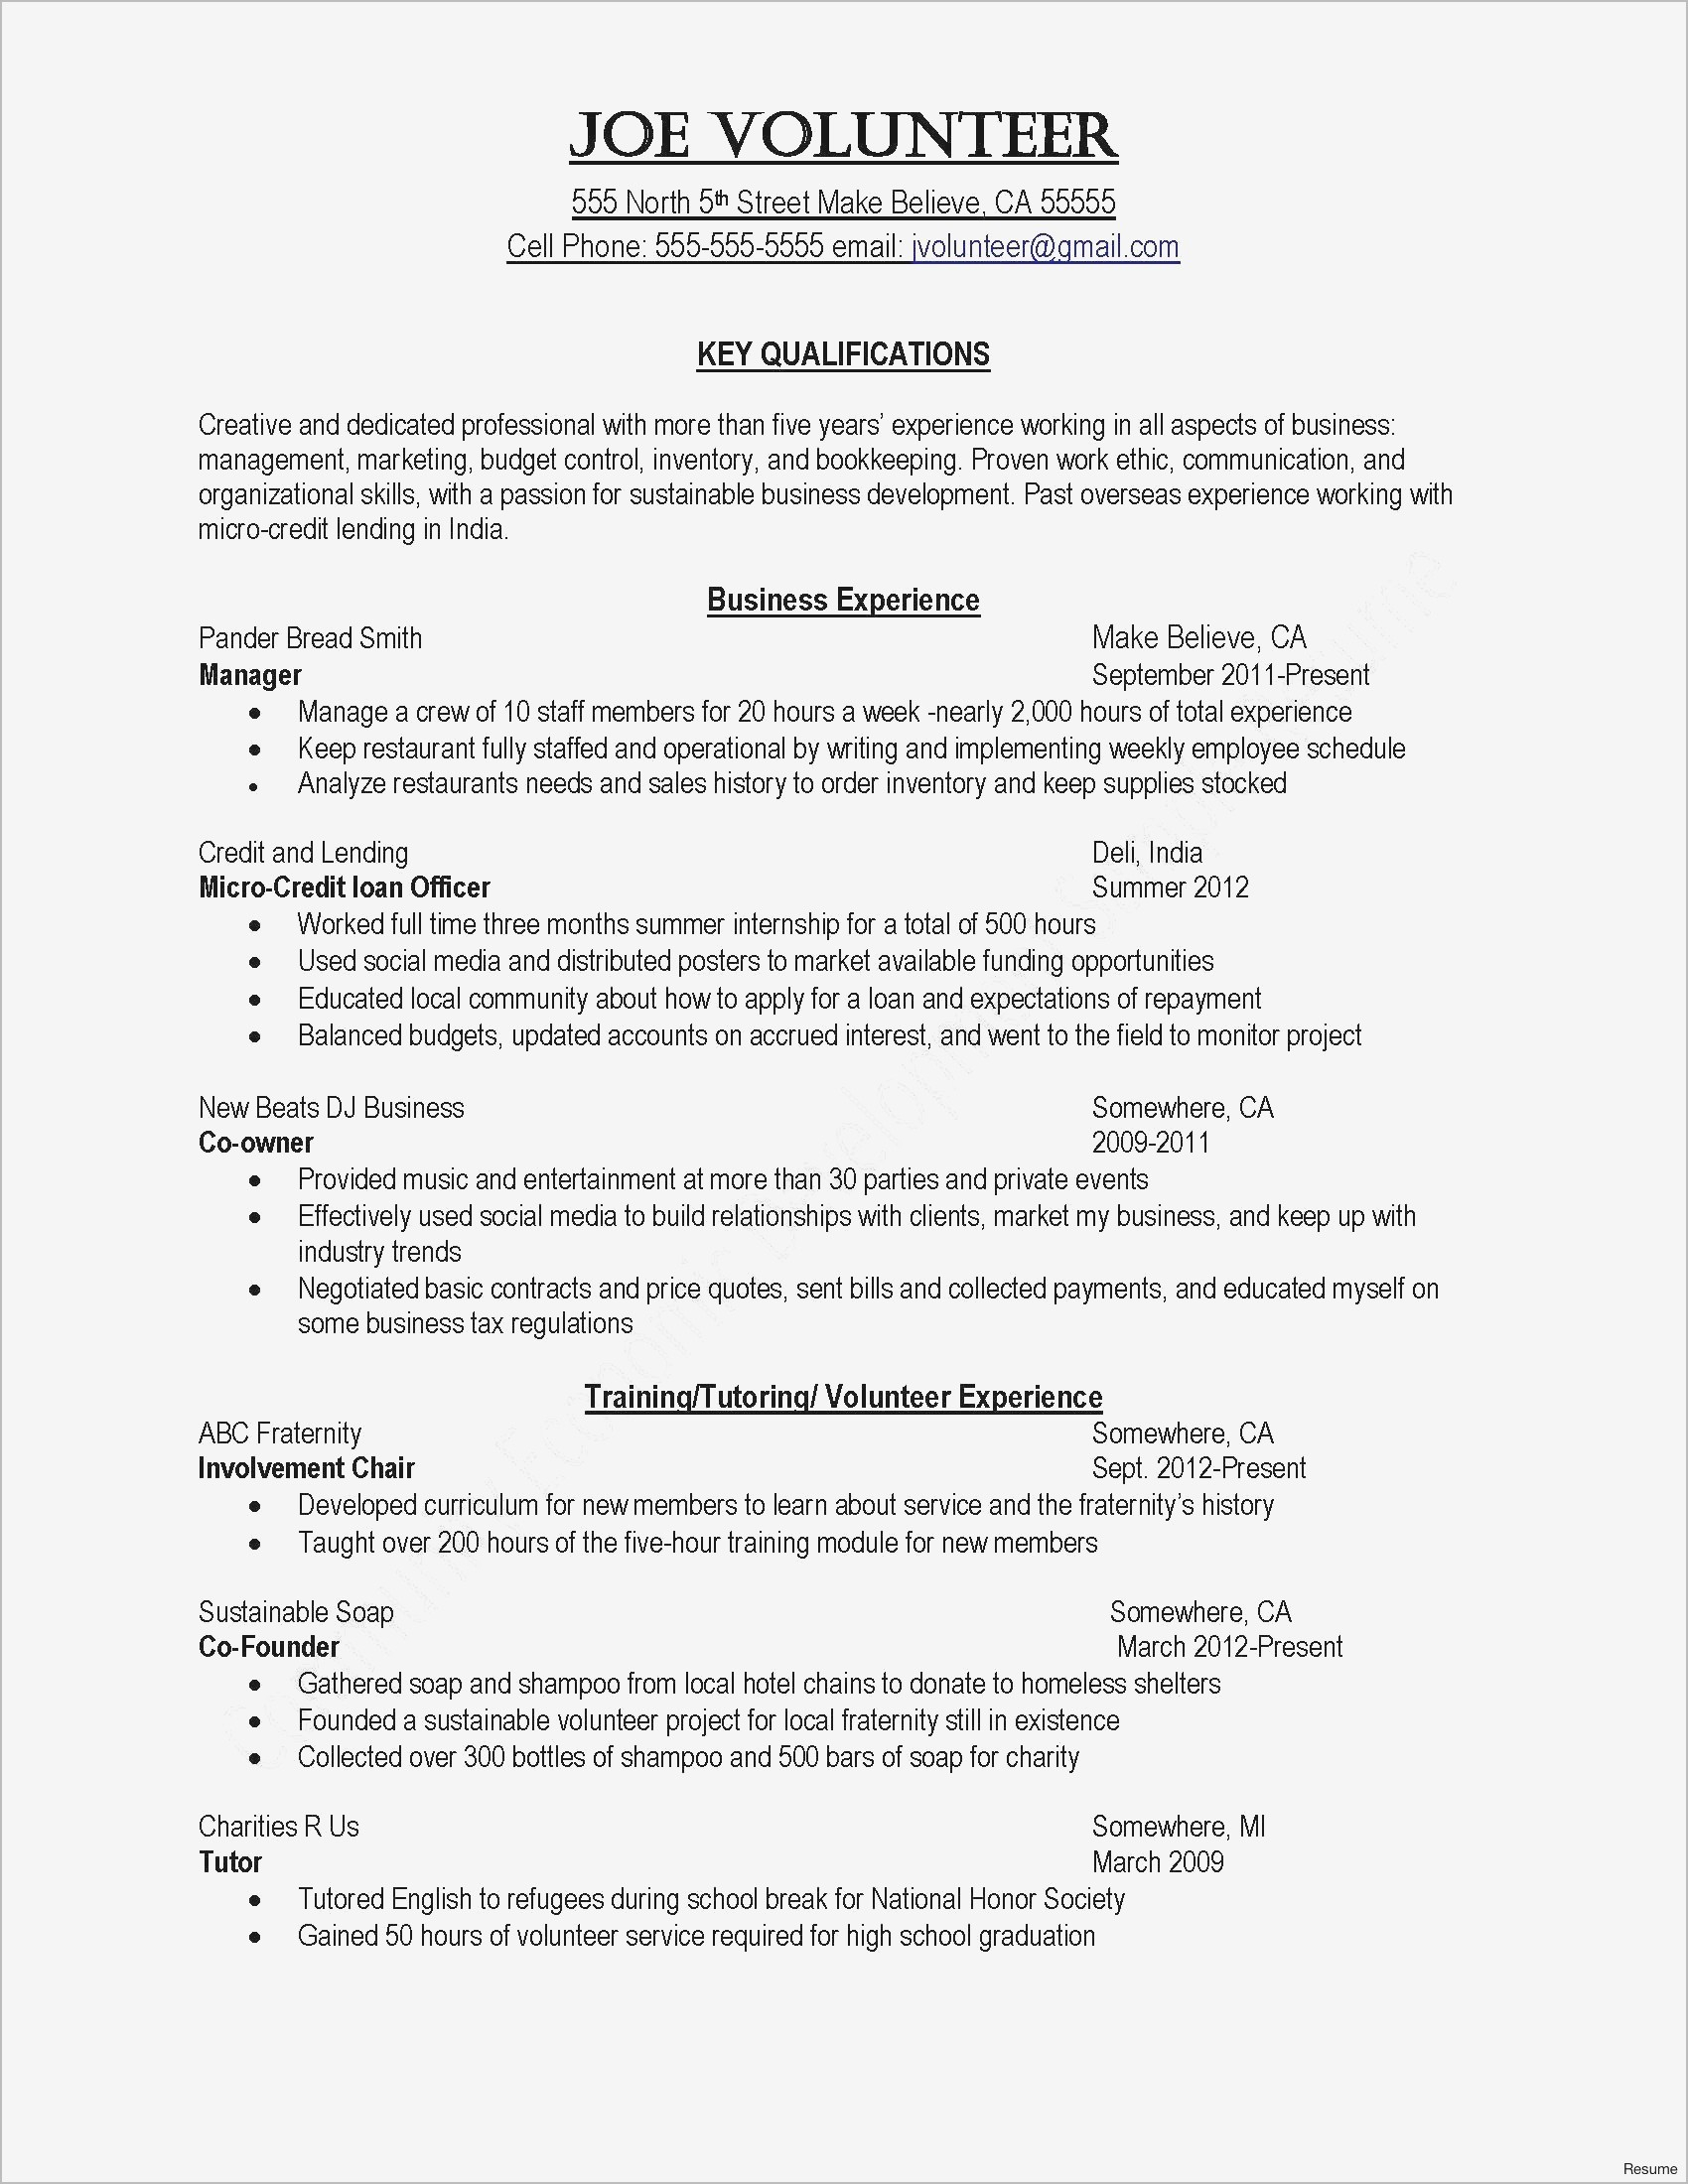 Free Letter Santa Template Download - Free Cover Letter Templates Letter From Santa Template Pdf